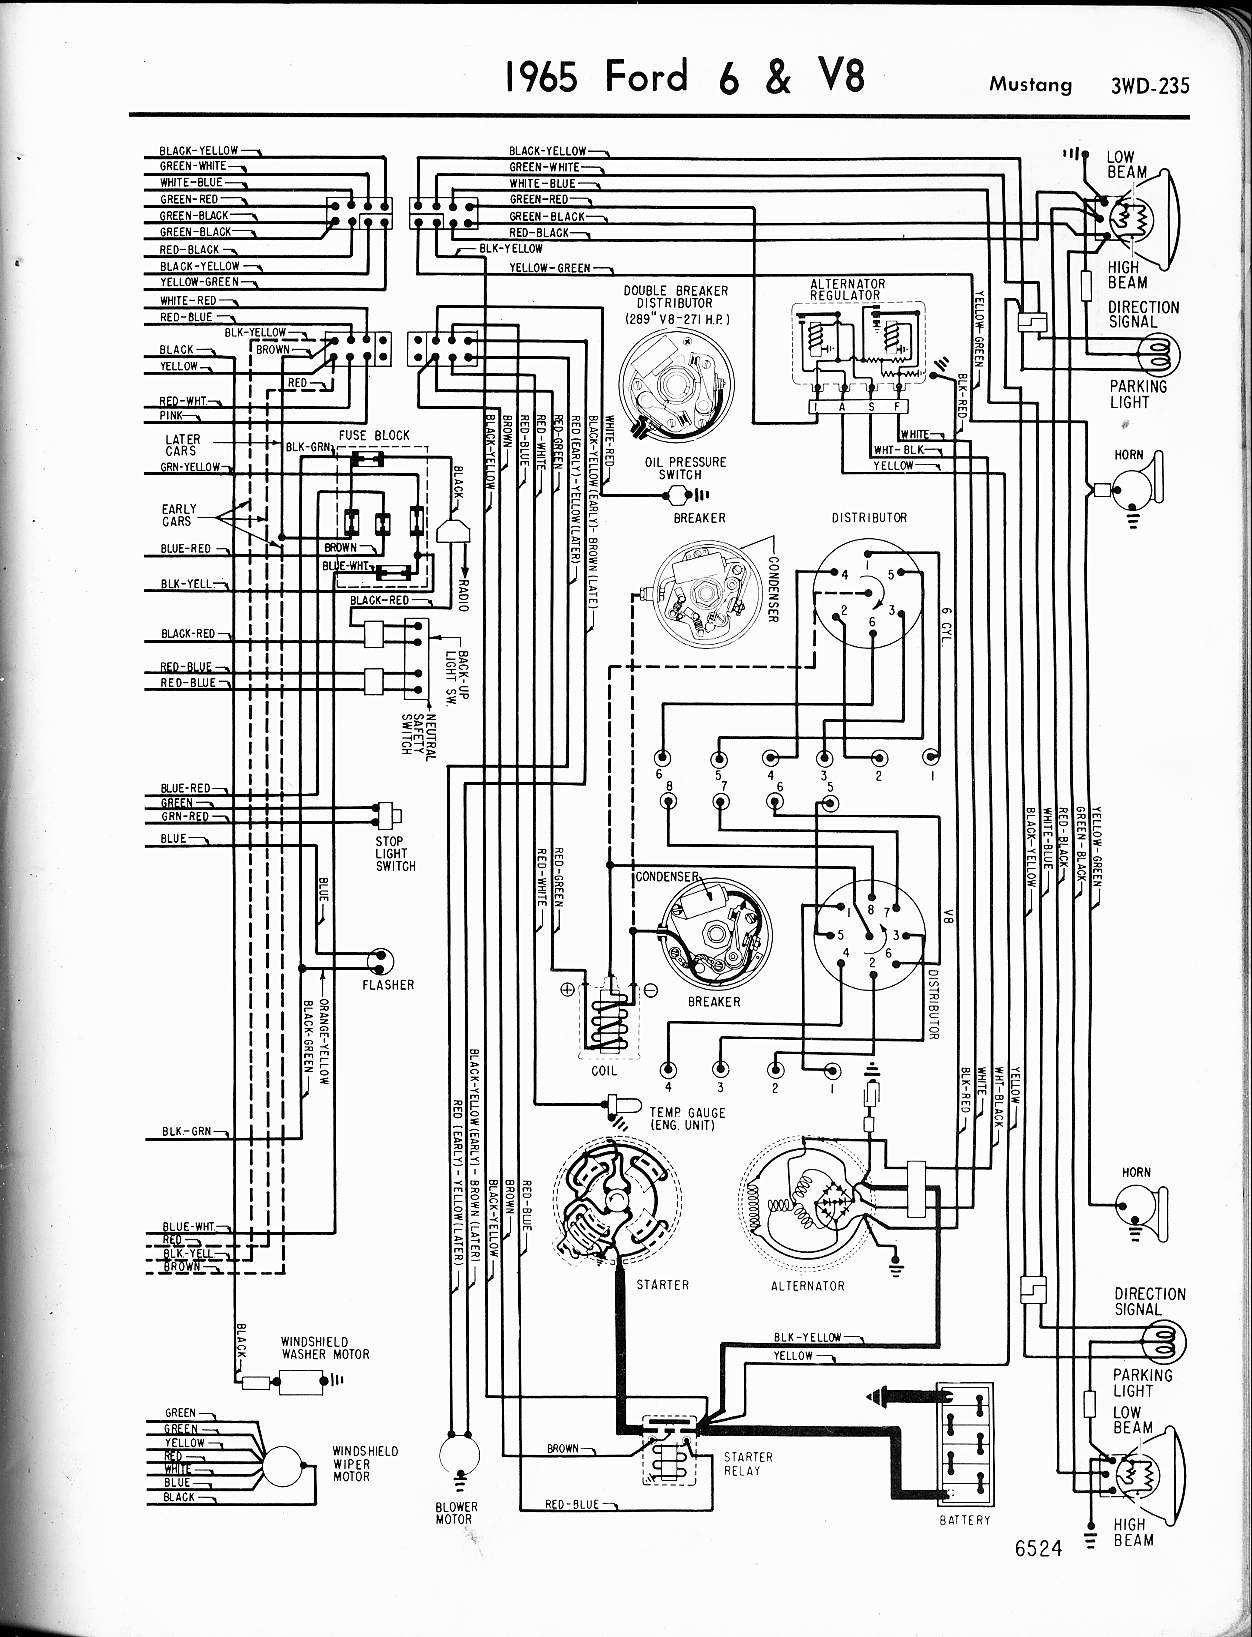 1965_mustang_wiring_2 ford diagrams 65 mustang engine wiring diagram at soozxer.org